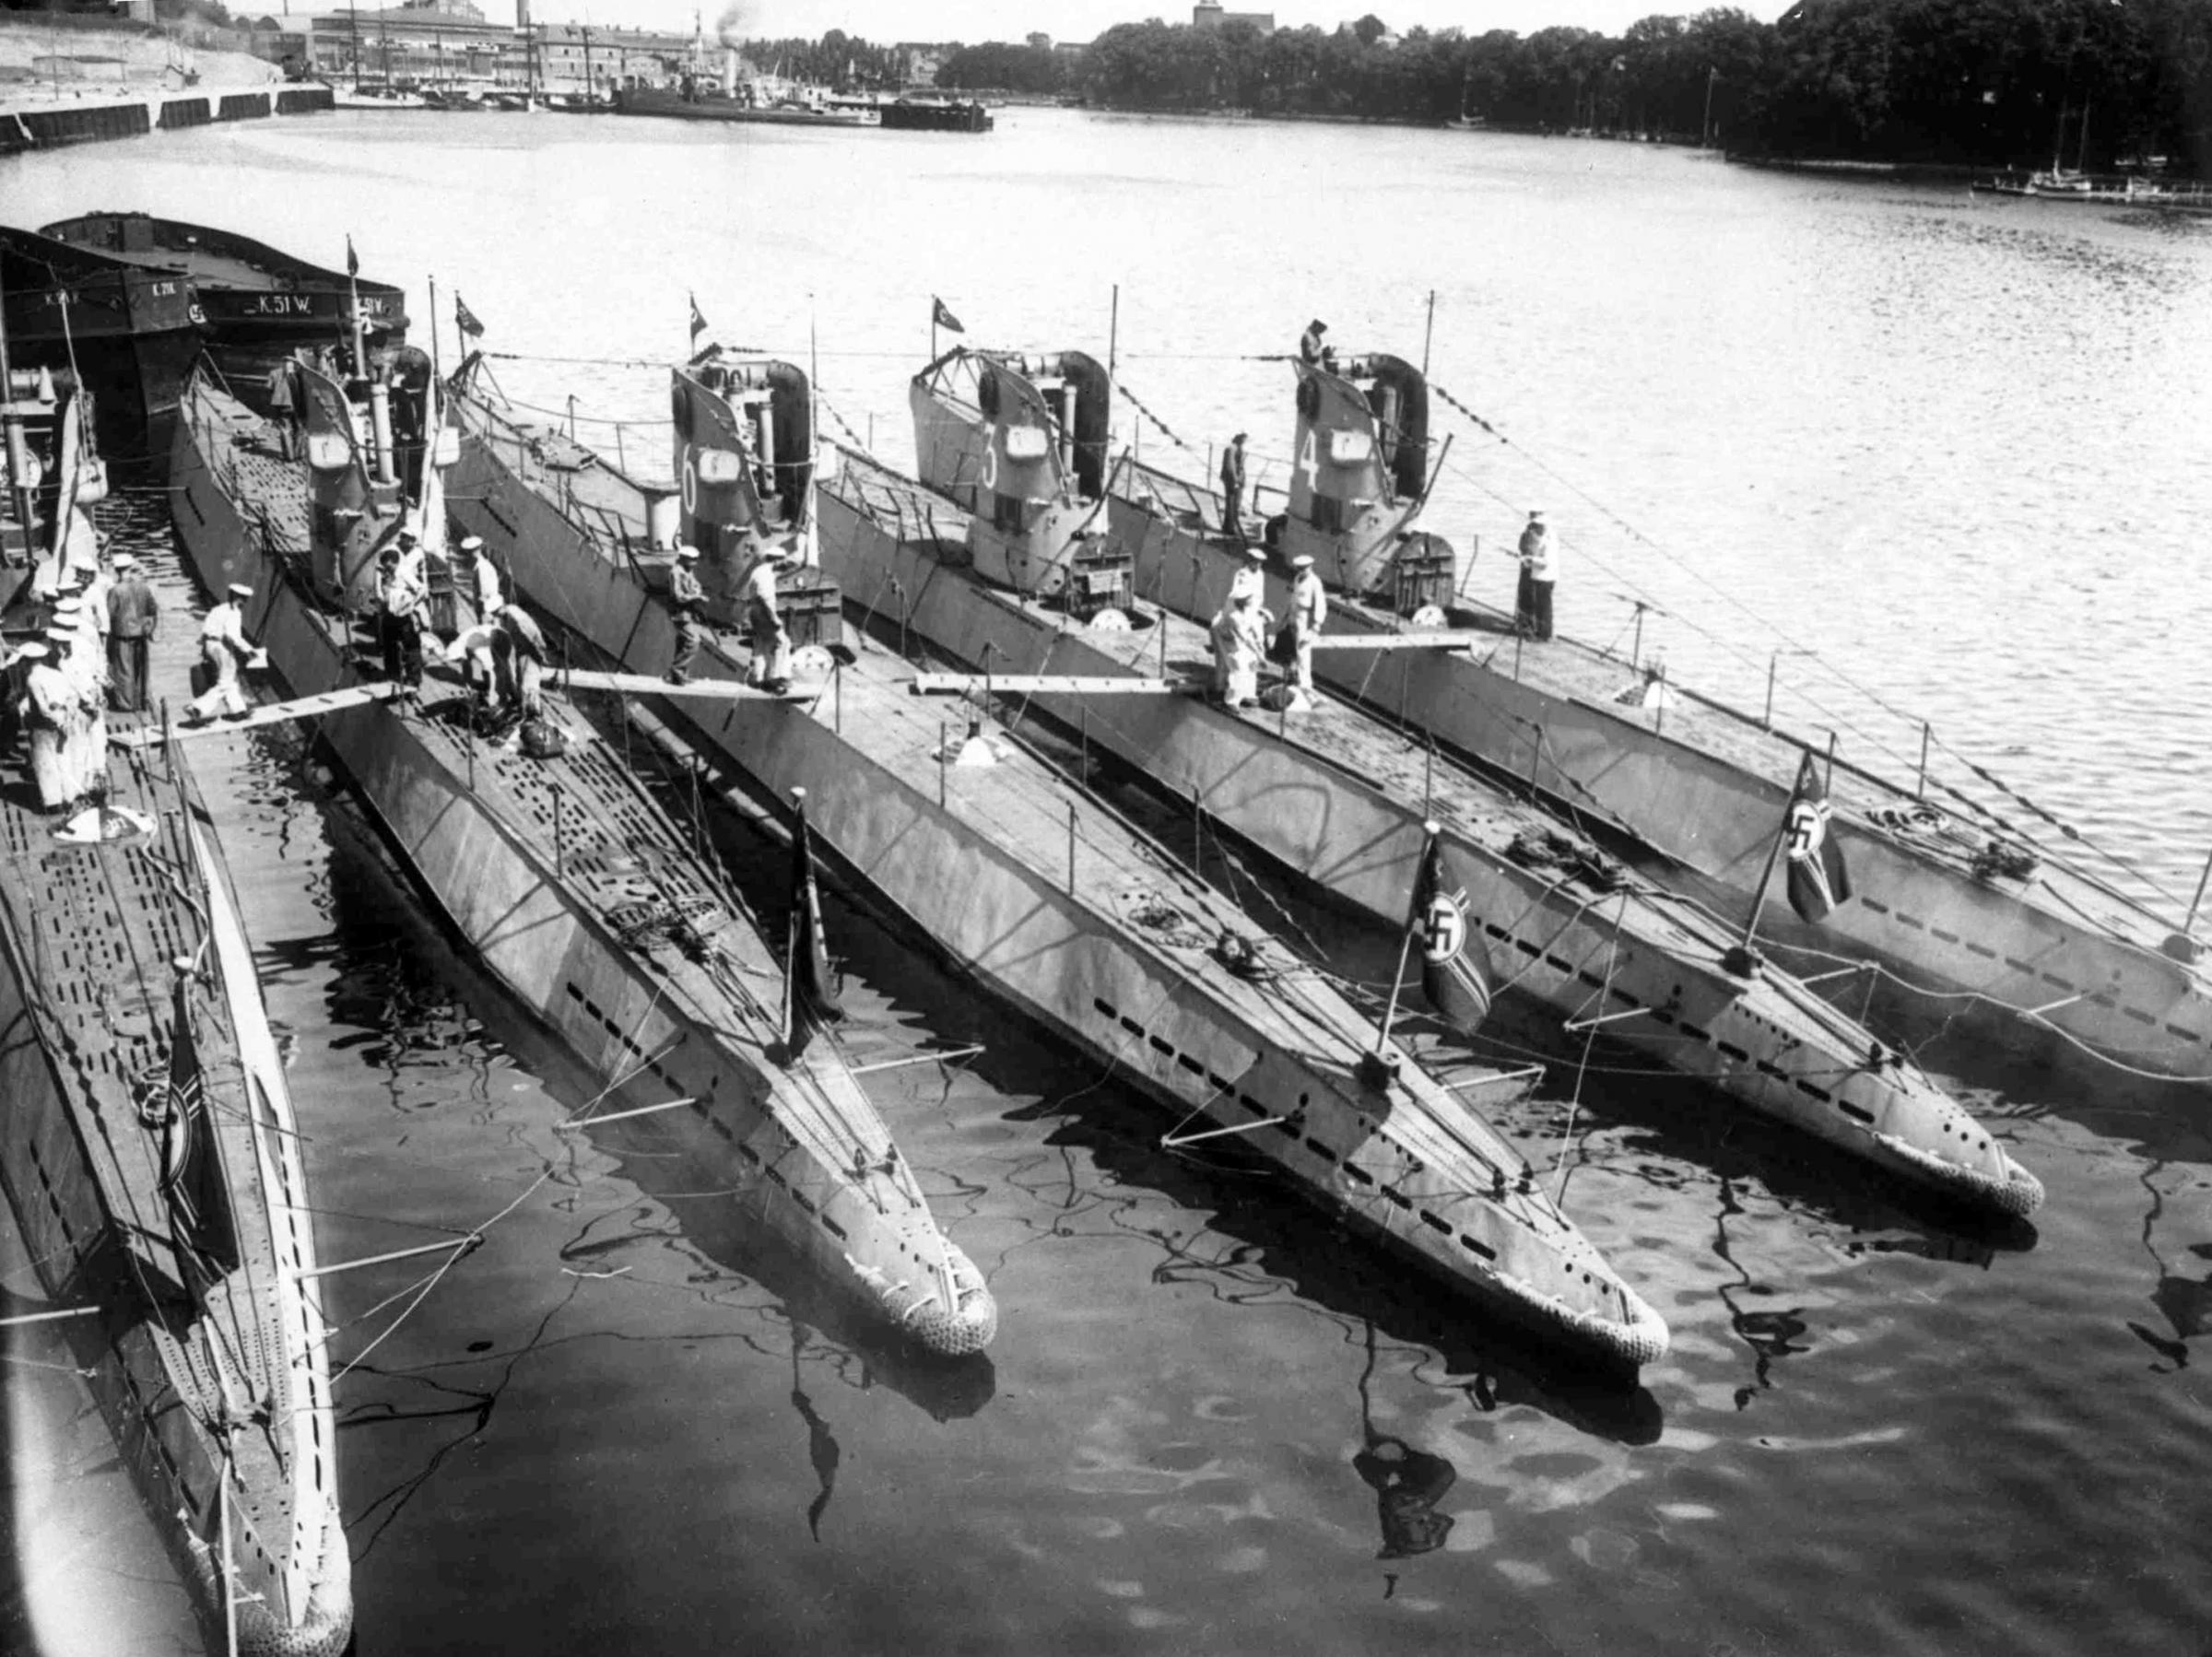 On the submerged ship of the Nazis found 4 tons of gold